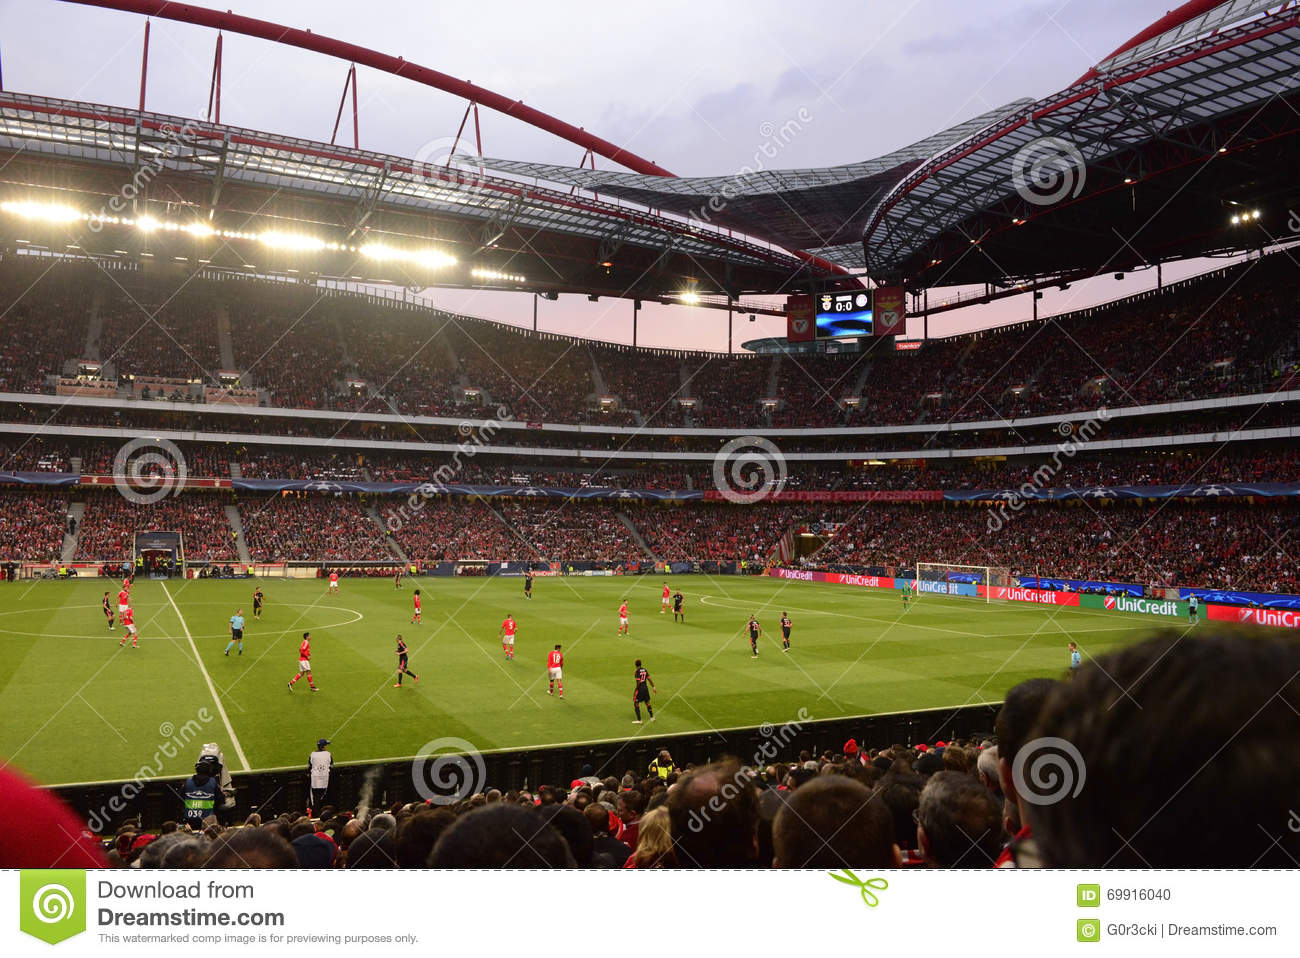 Football Stadium, Benfica Soccer Arena, Champions League Game, Real Fans Crowd